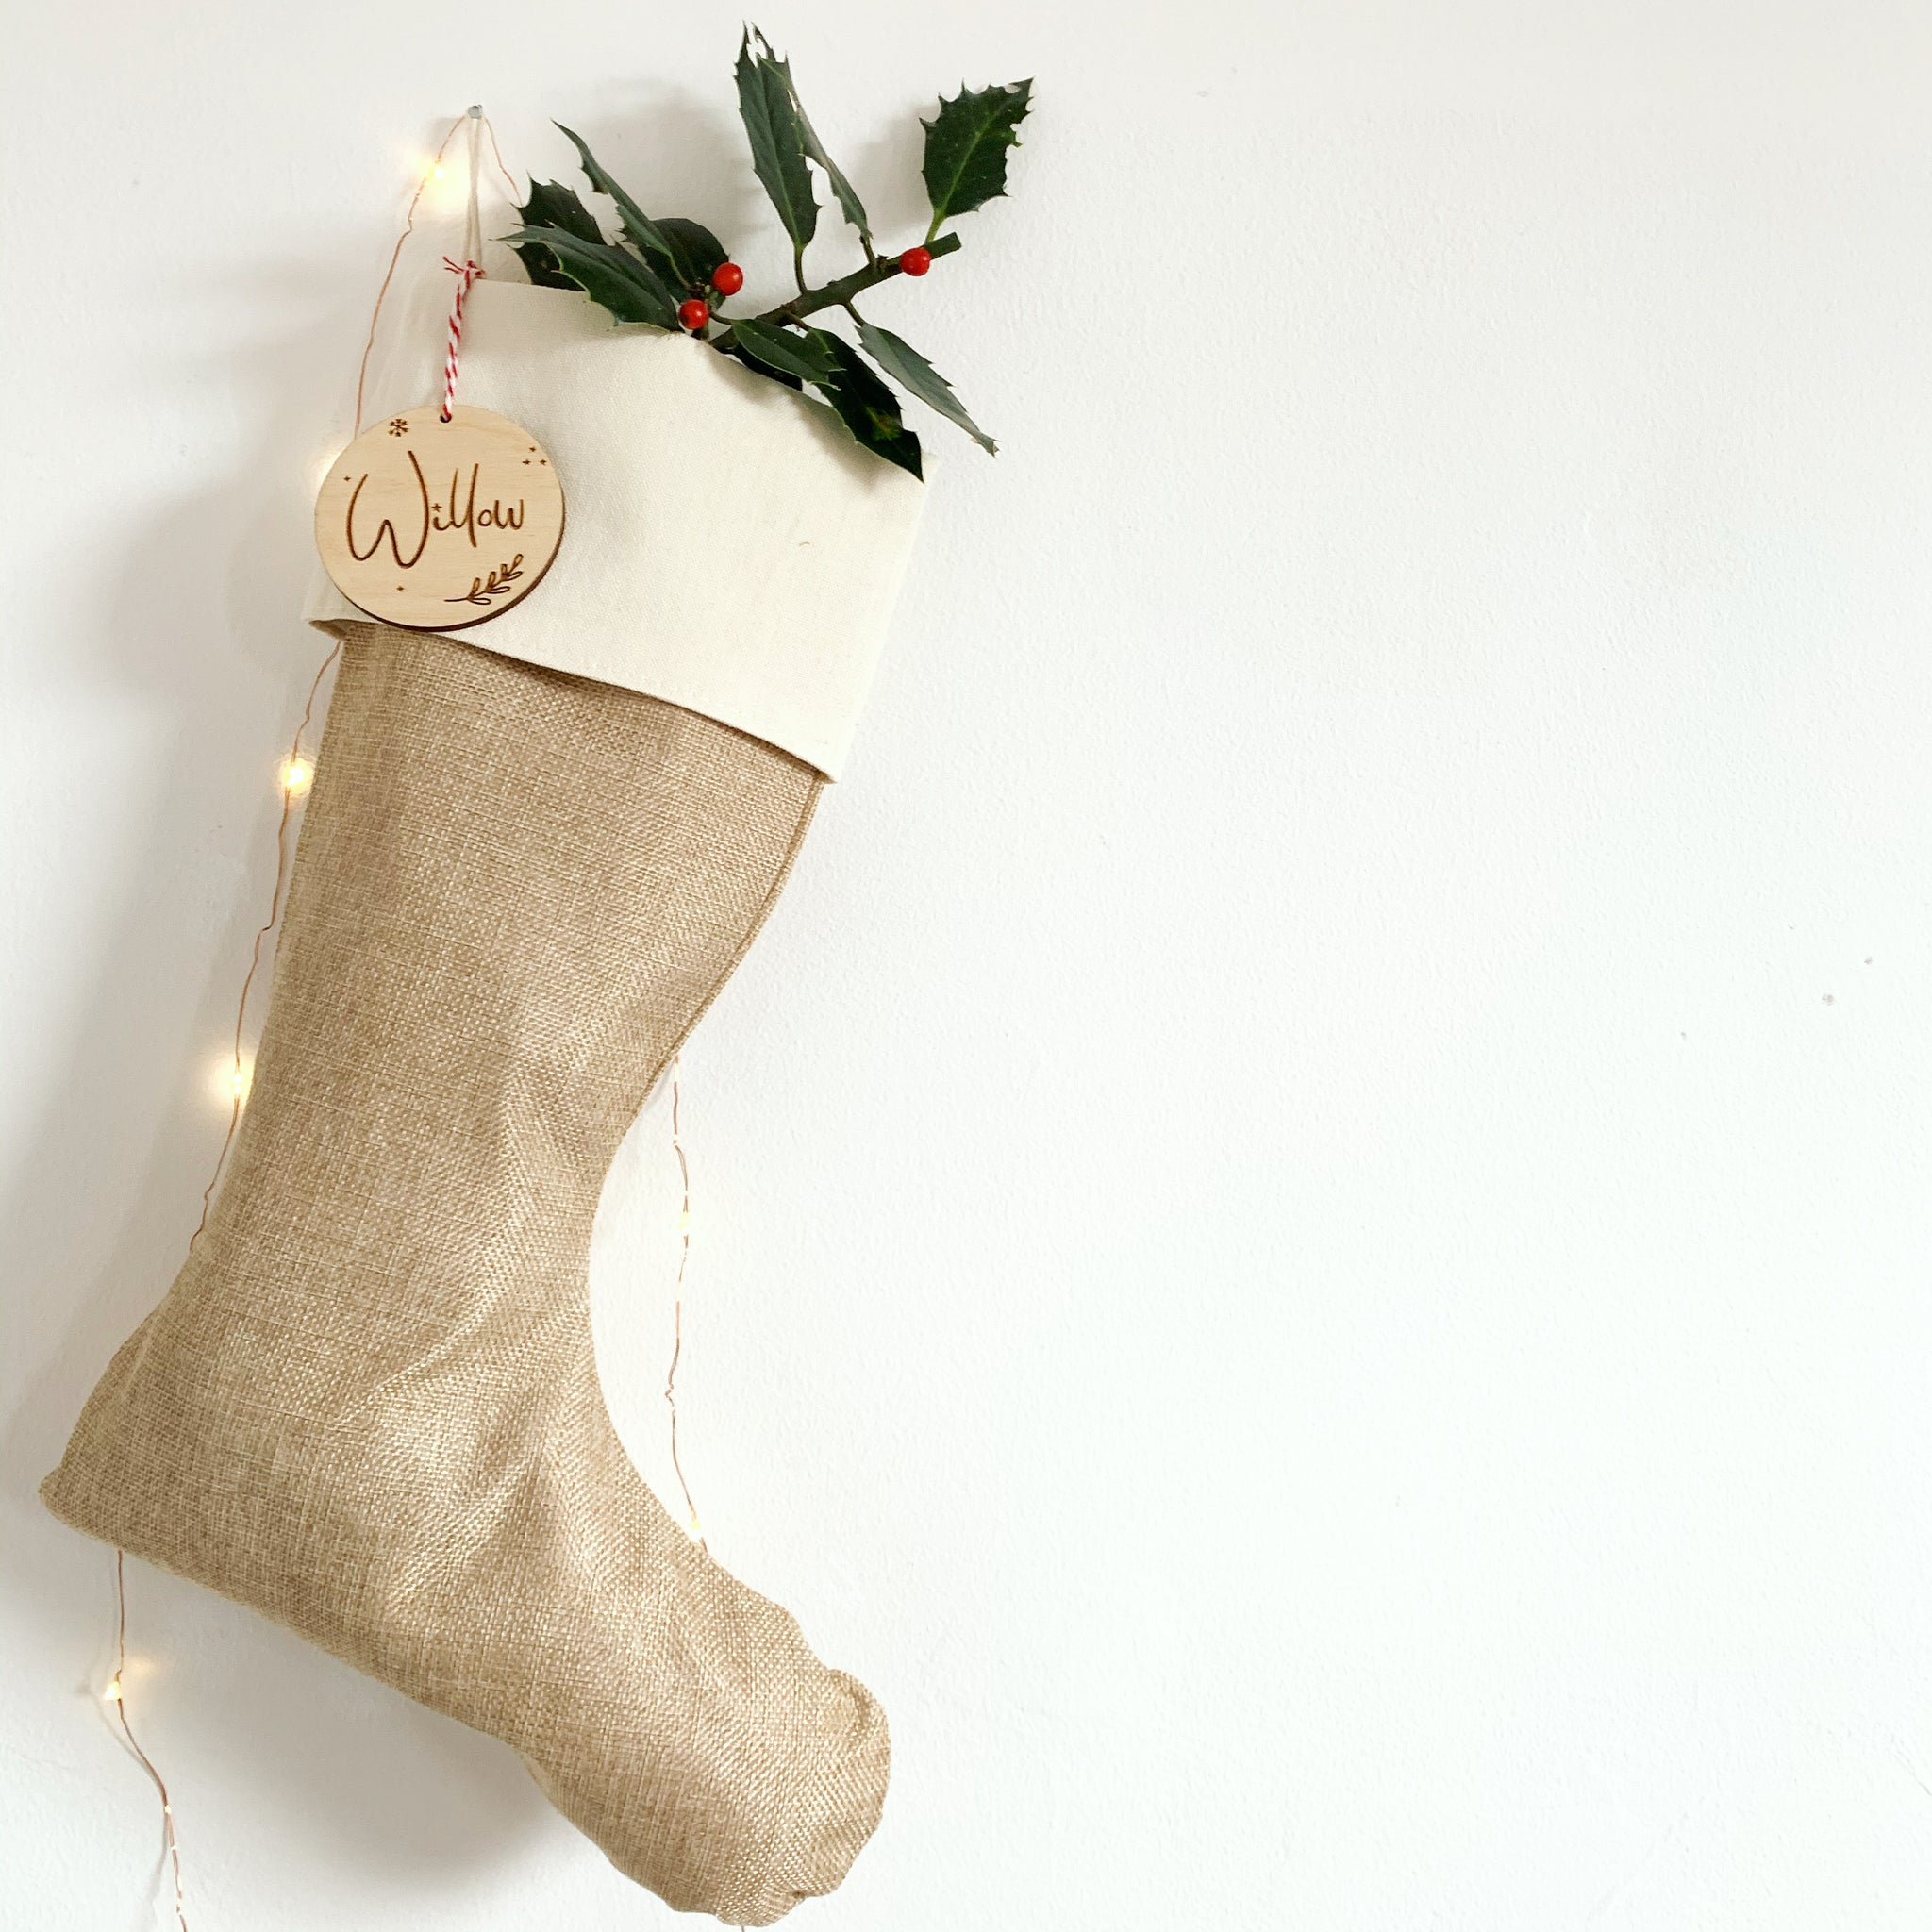 PERSONALISED NATURAL STOCKING